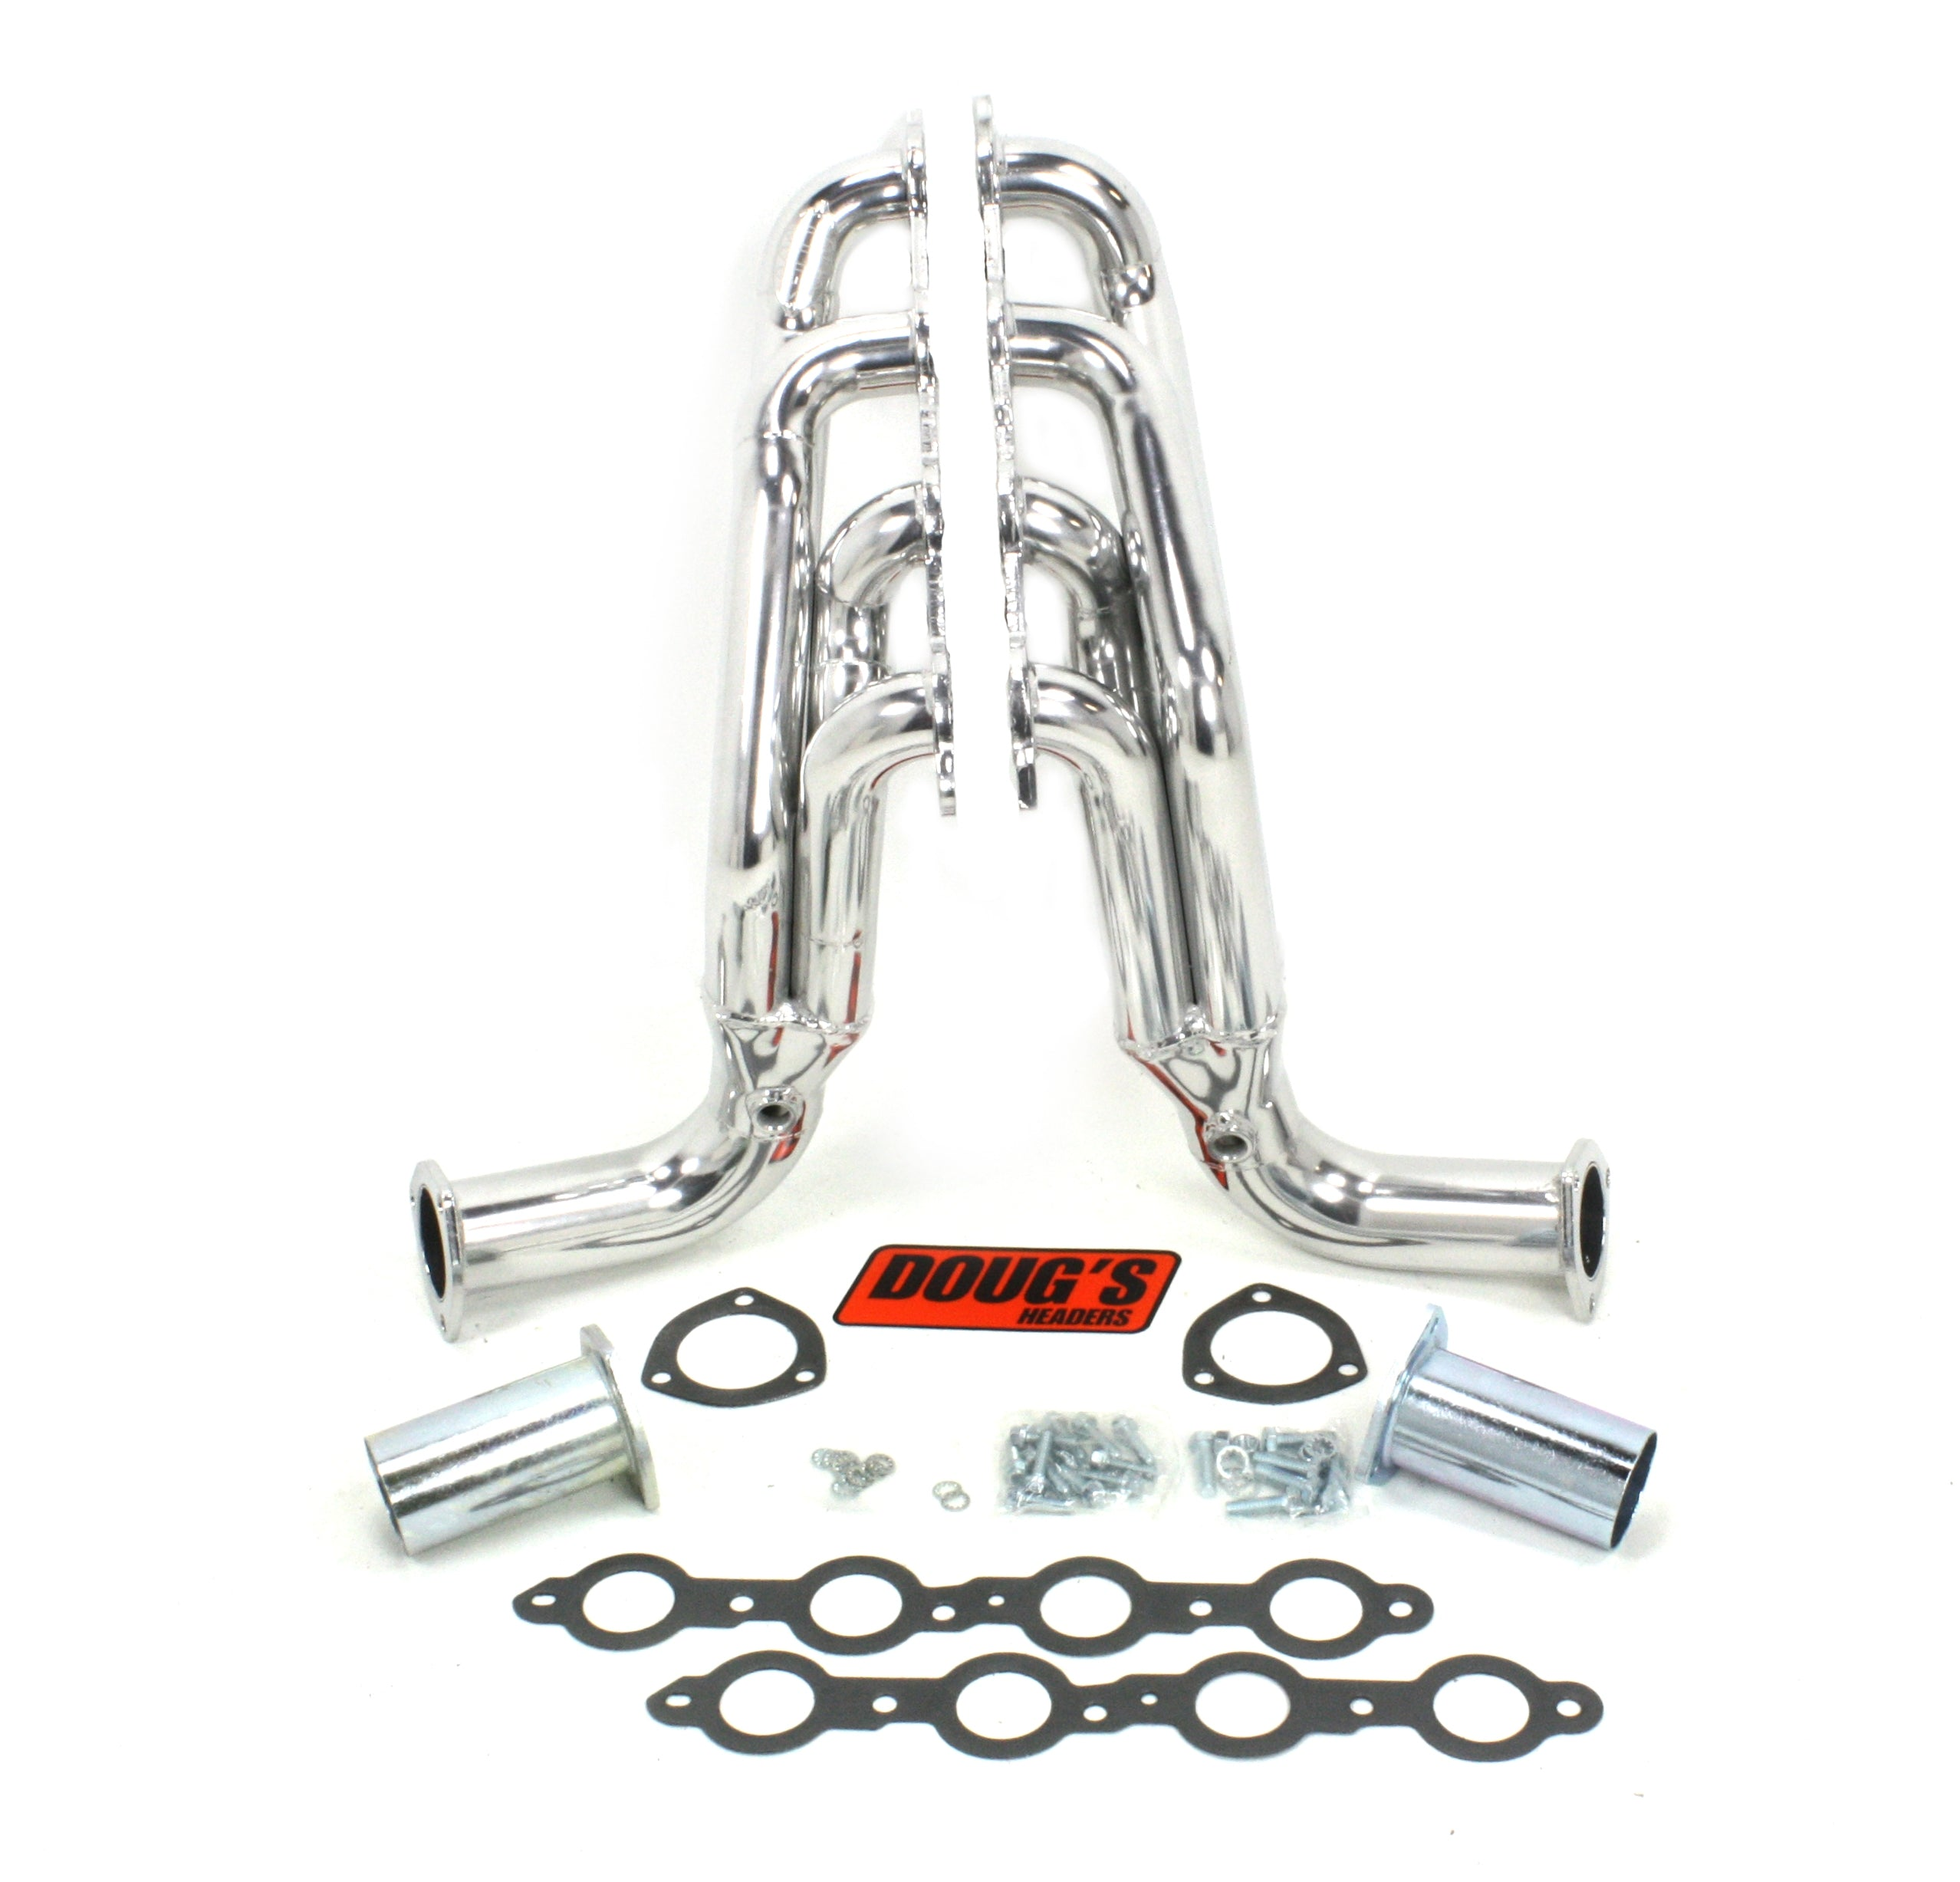 "Doug's Headers D3343 1 3/4"" 4-Tube Shorty Header Chevrolet Passenger Car/Wagon 58-64 LS1-LS6 Swap Metallic Ceramic Coating"